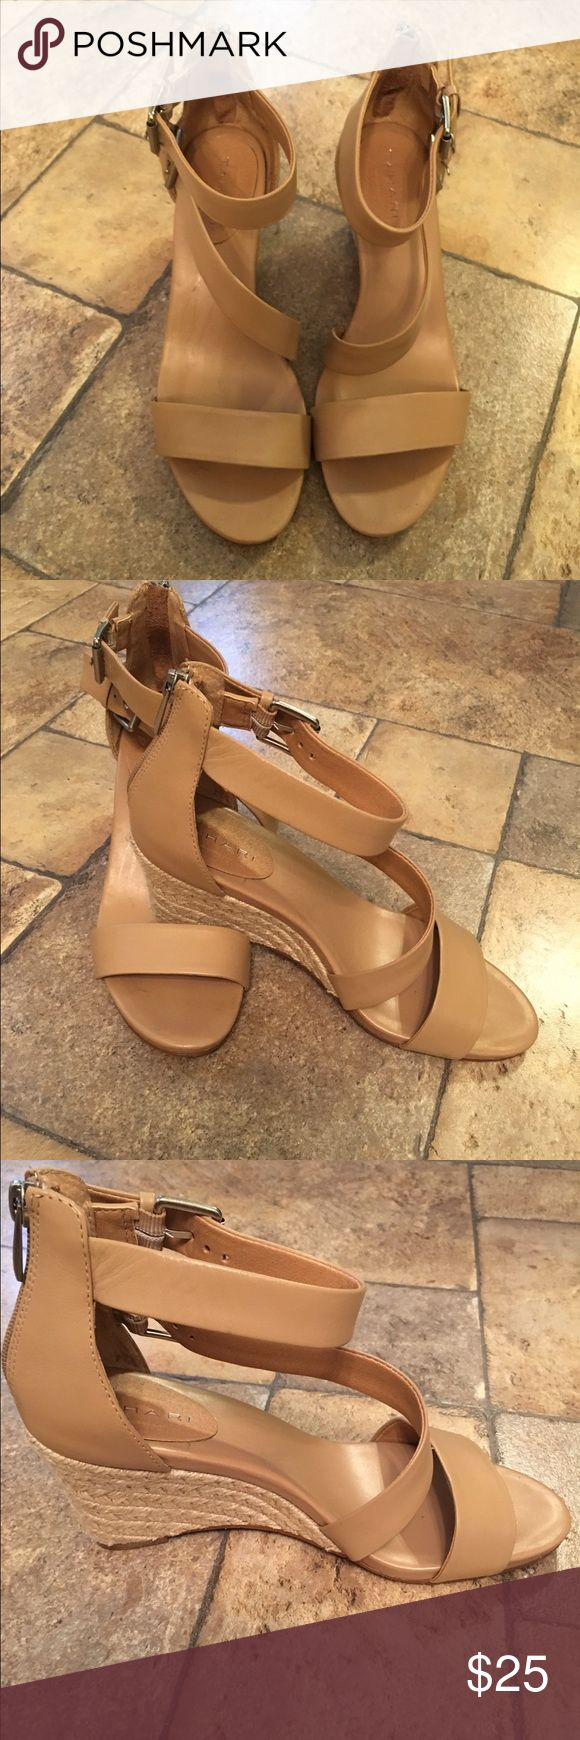 Tahari Espadrille Ankle Sandals Stylish Tahari ankle sandals in nude. Espadrille-like bottom with adjustable straps around the ankles, zipped back. Only worn once! Very very light wear on the soles,  otherwise perfect condition! Tahari Shoes Sandals